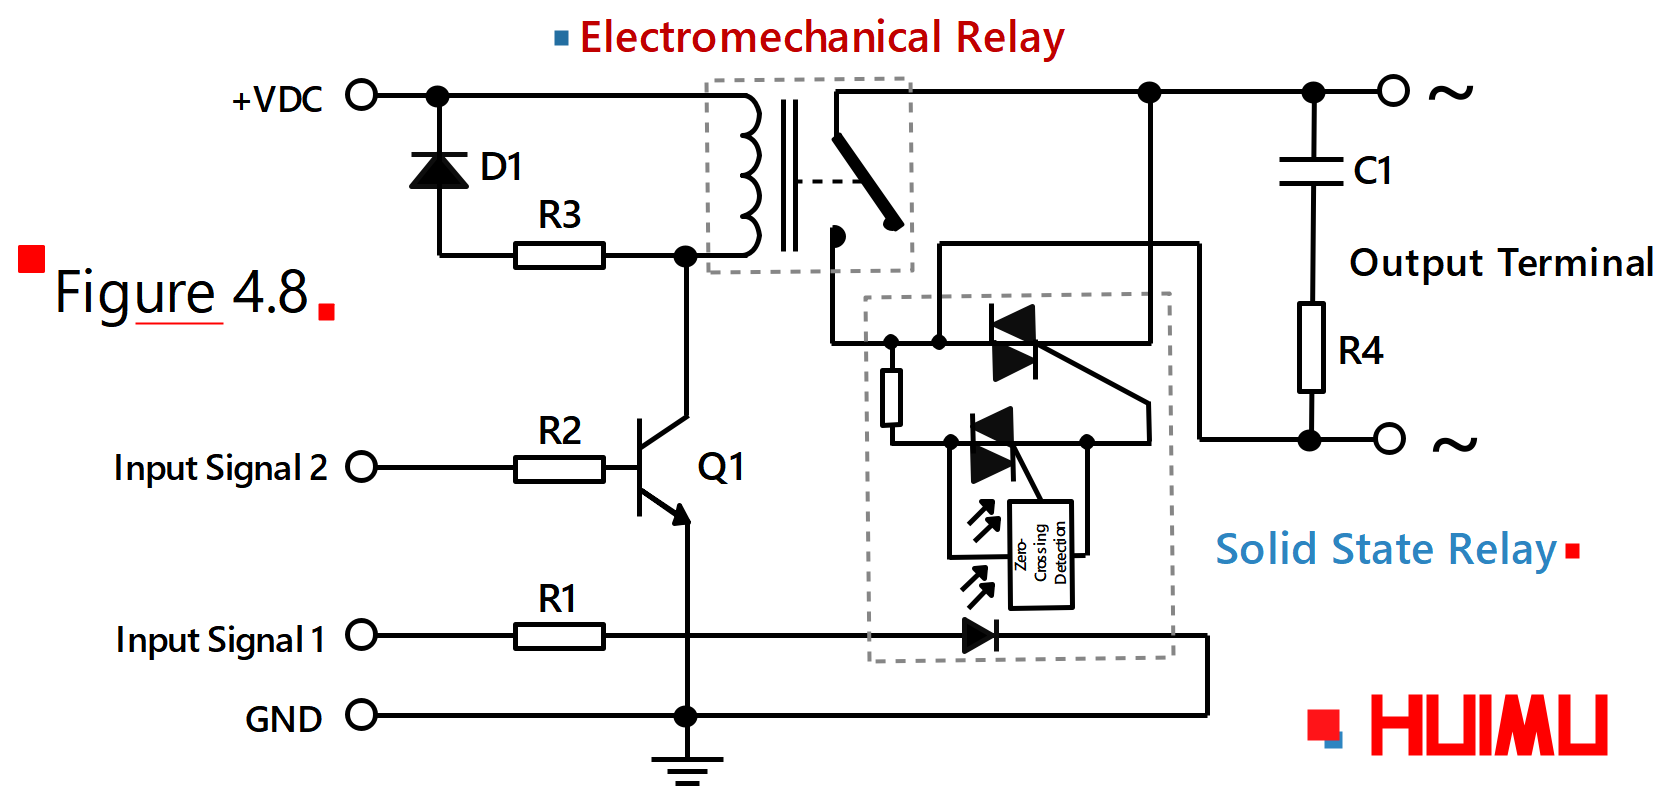 Structure_of_Hybrid_Solid_State_Relay